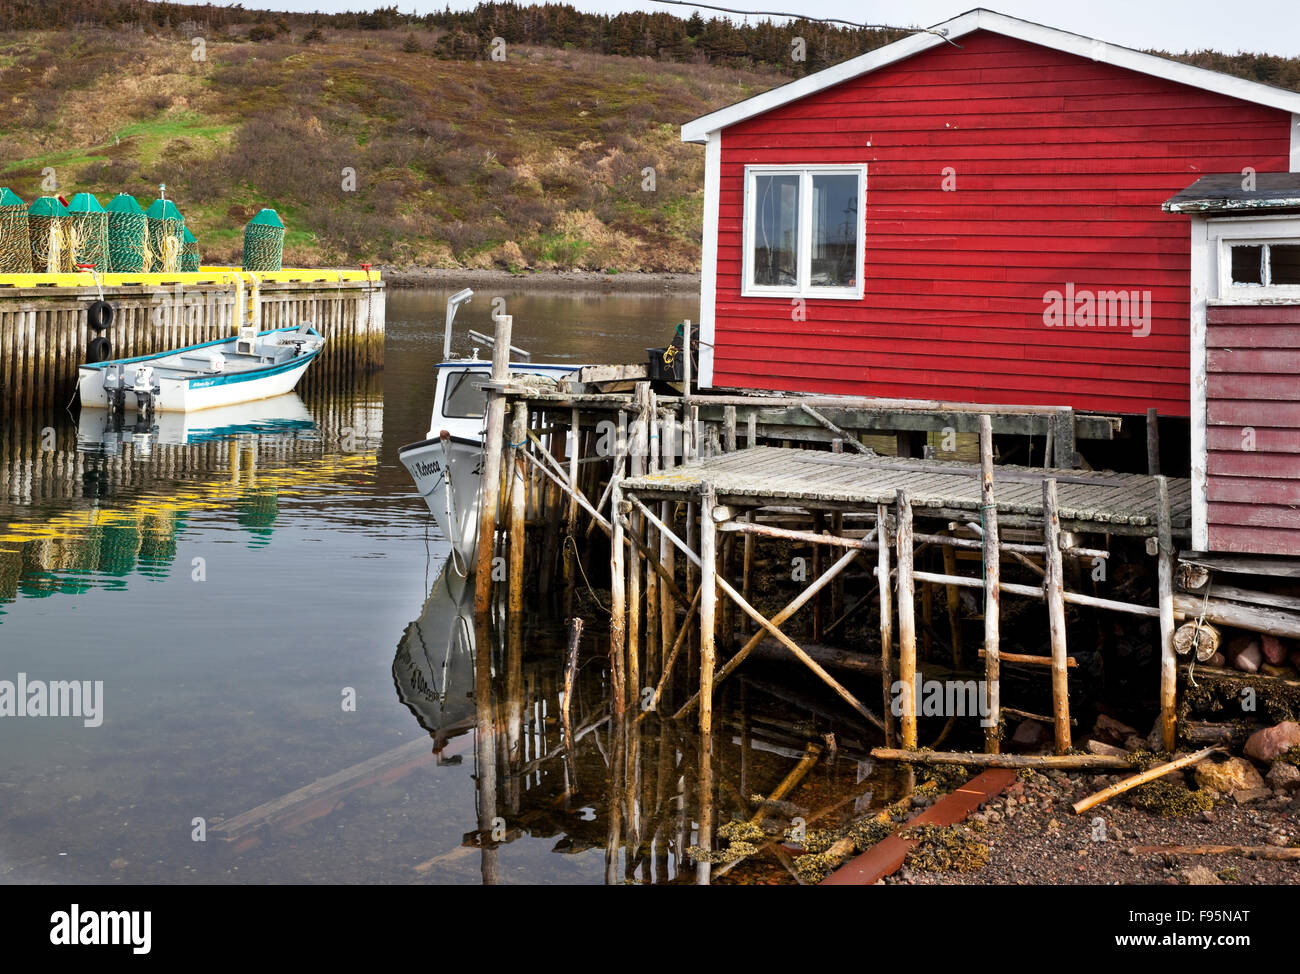 Designated a Municipal Heritage Site, Fortune Fishing Sheds consists of a collection of sheds, wharfs, walkways - Stock Image